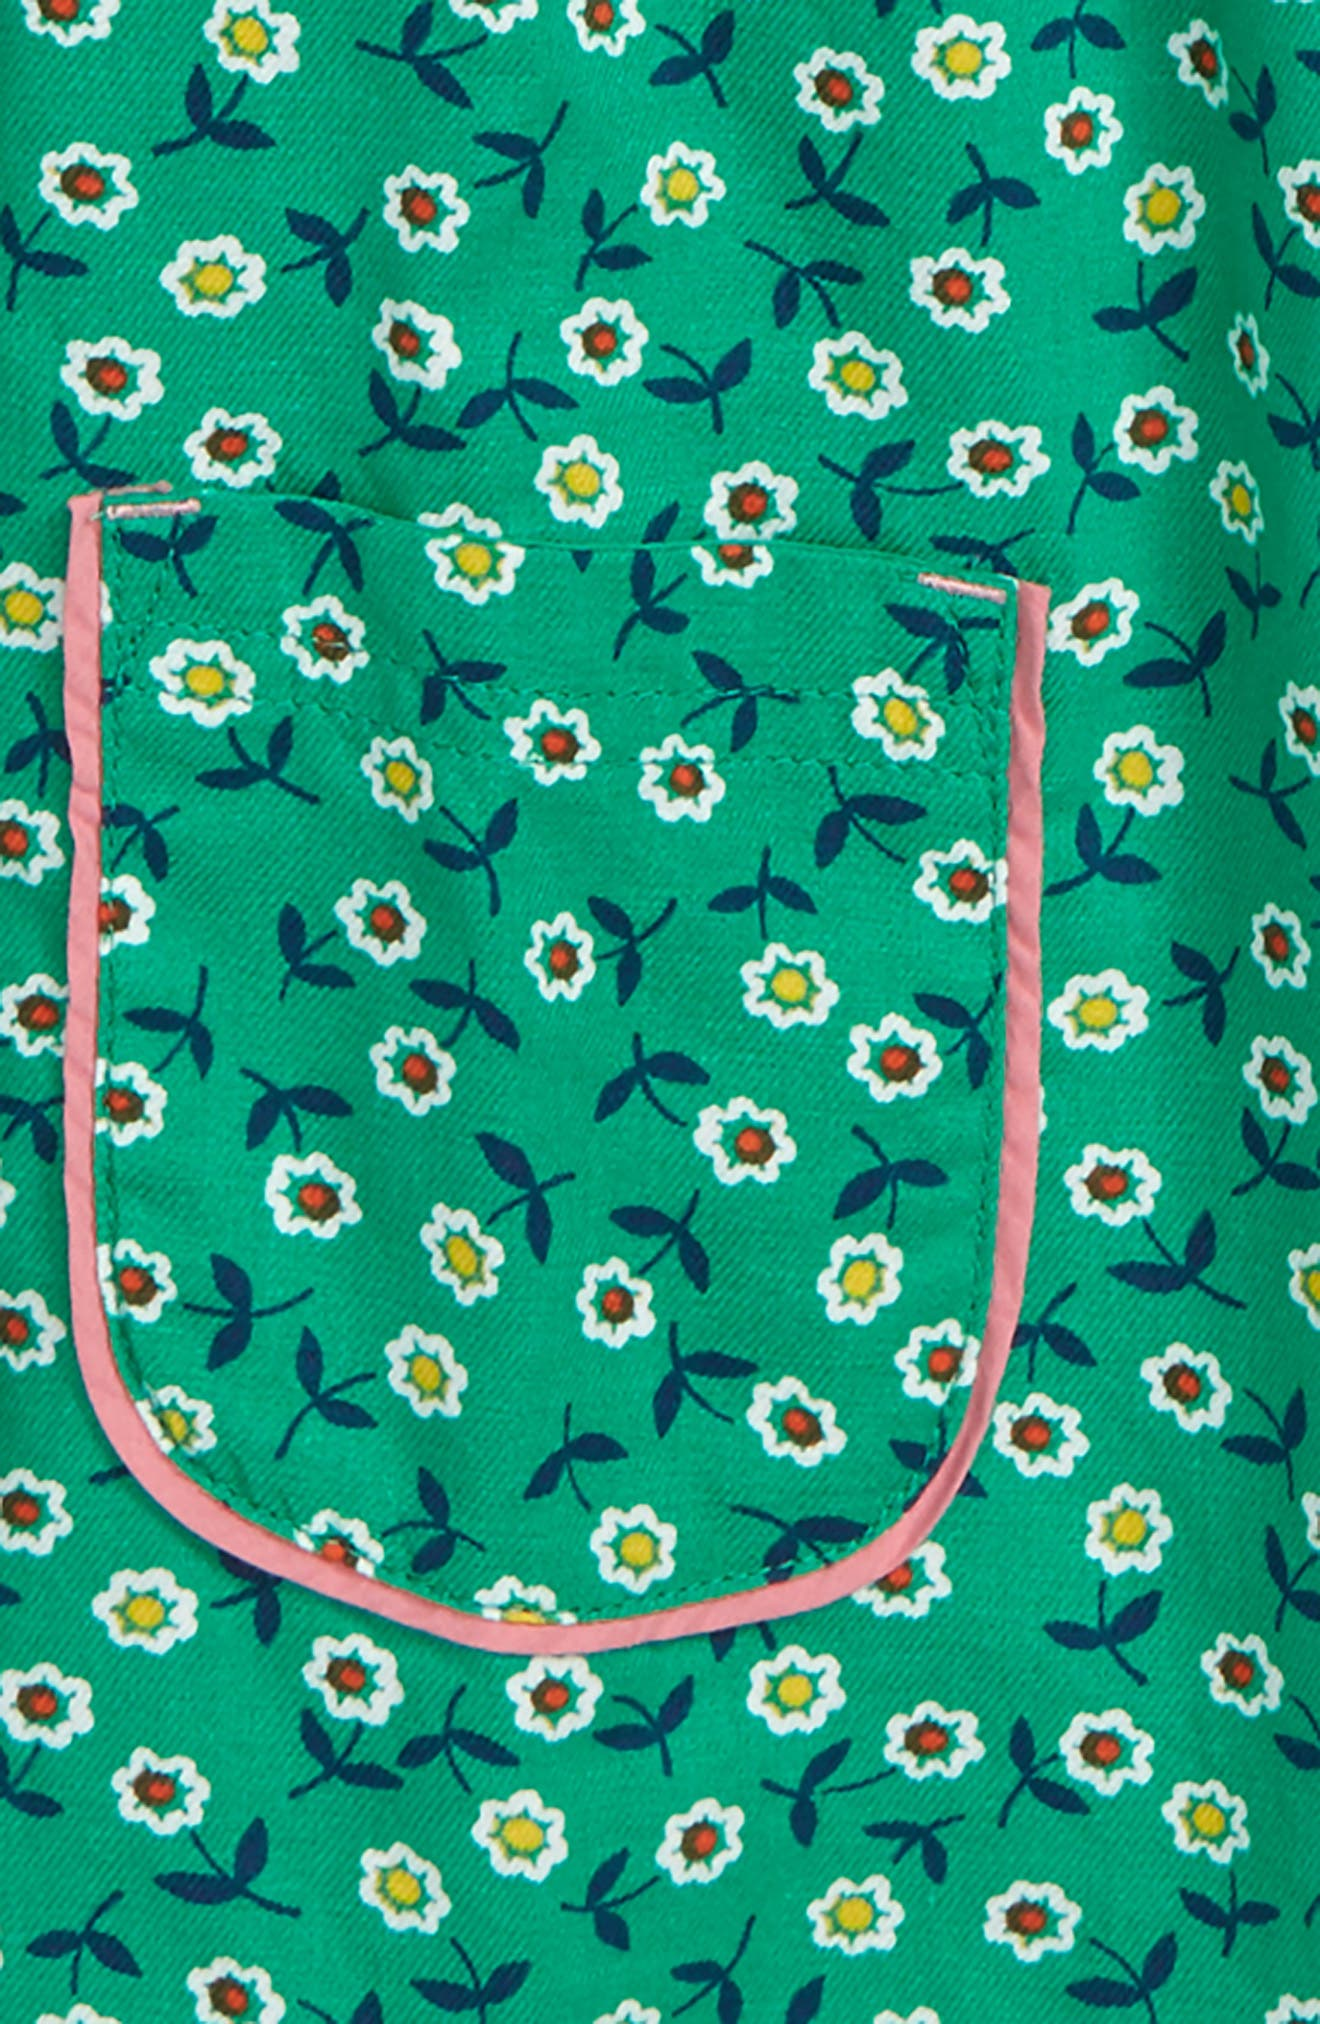 Floaty Woven Tunic,                             Alternate thumbnail 2, color,                             GREEN PEPPER RETRO DAISIES